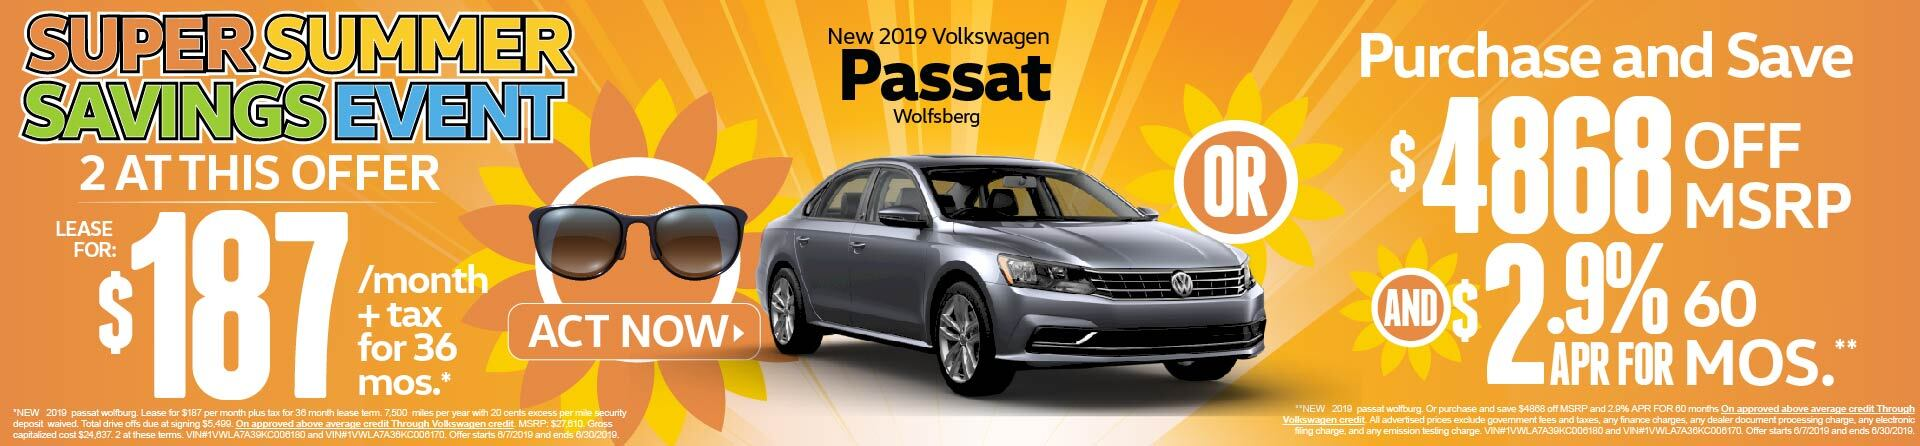 Summer Savings Event Passat